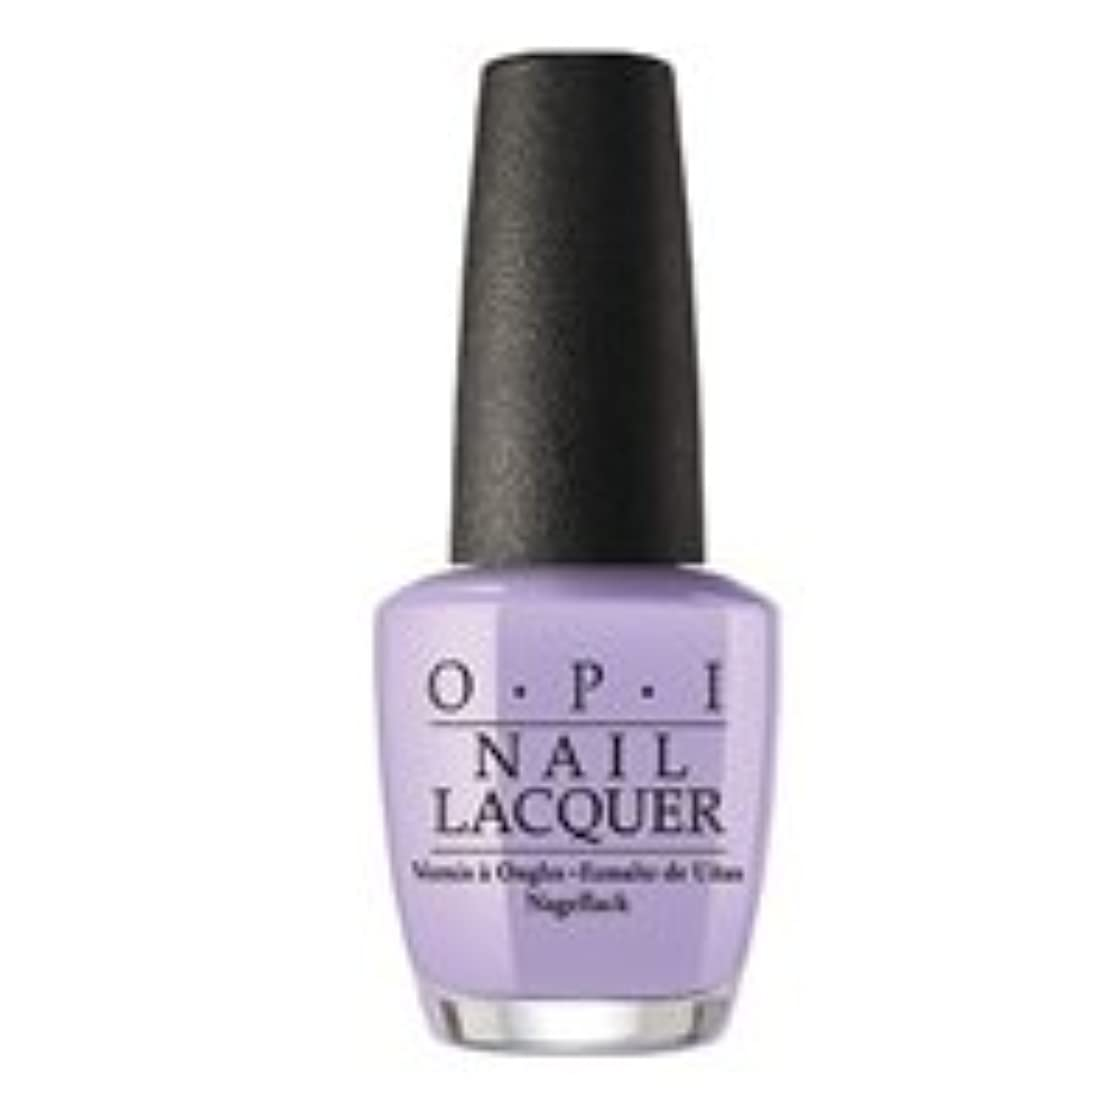 O.P.I NL F83 Polly Want a Lacquer?(ポリーワットアラッカー?) #NL F83 Polly Want a Lacquer?